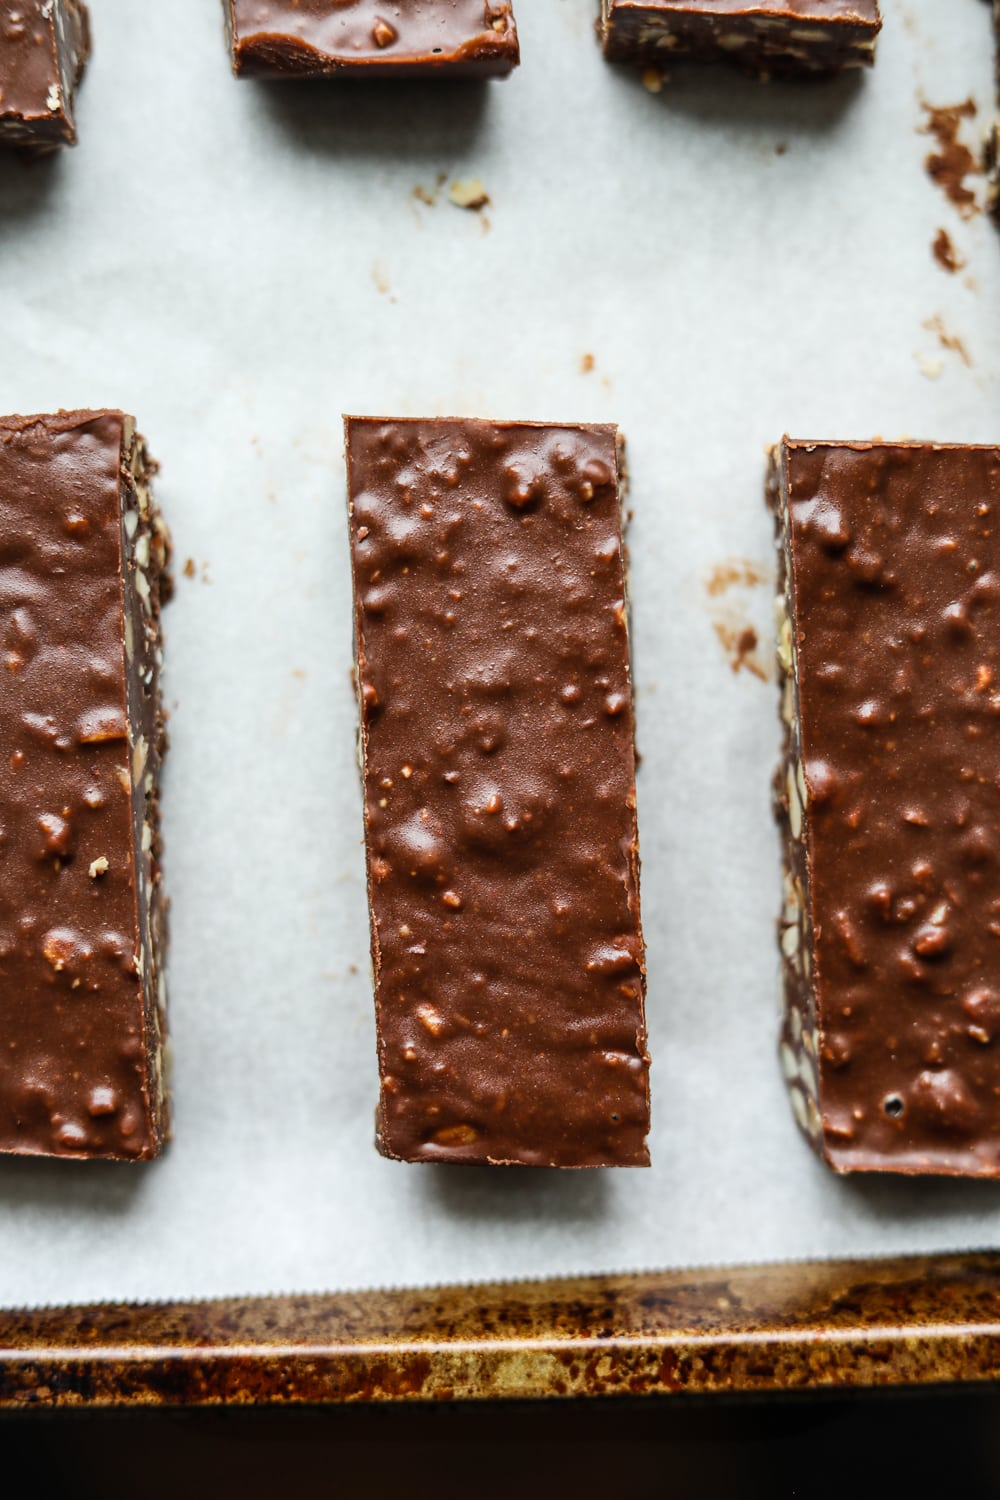 Chocolate candy bars on a baking sheet lined with parchment paper.